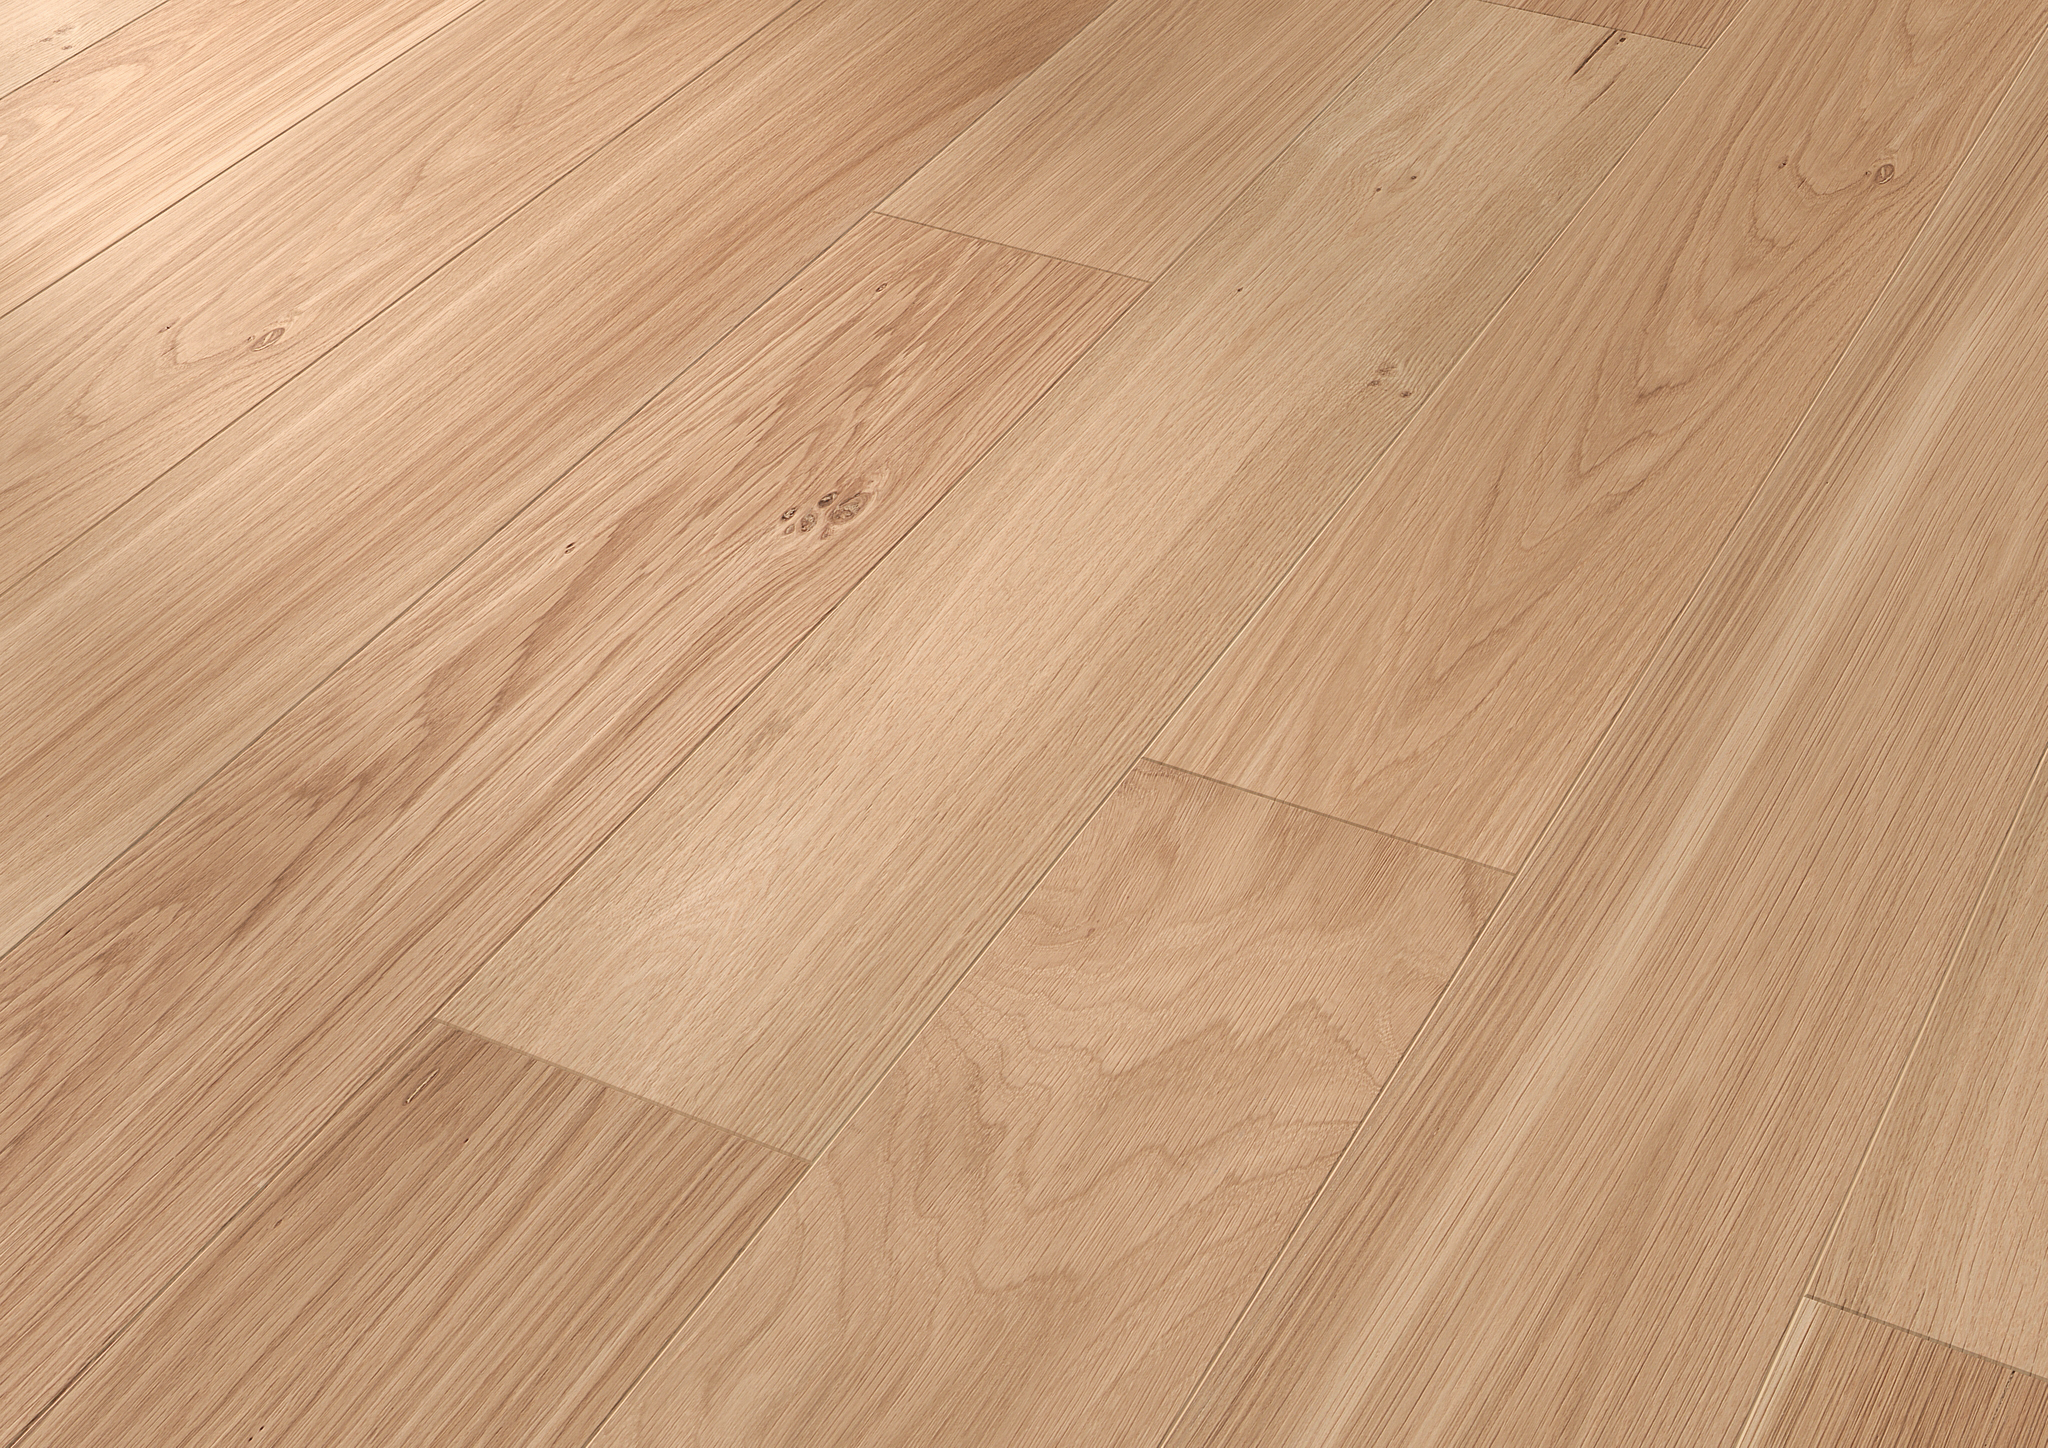 PARAT 20 Oak RB nature raw solid plank